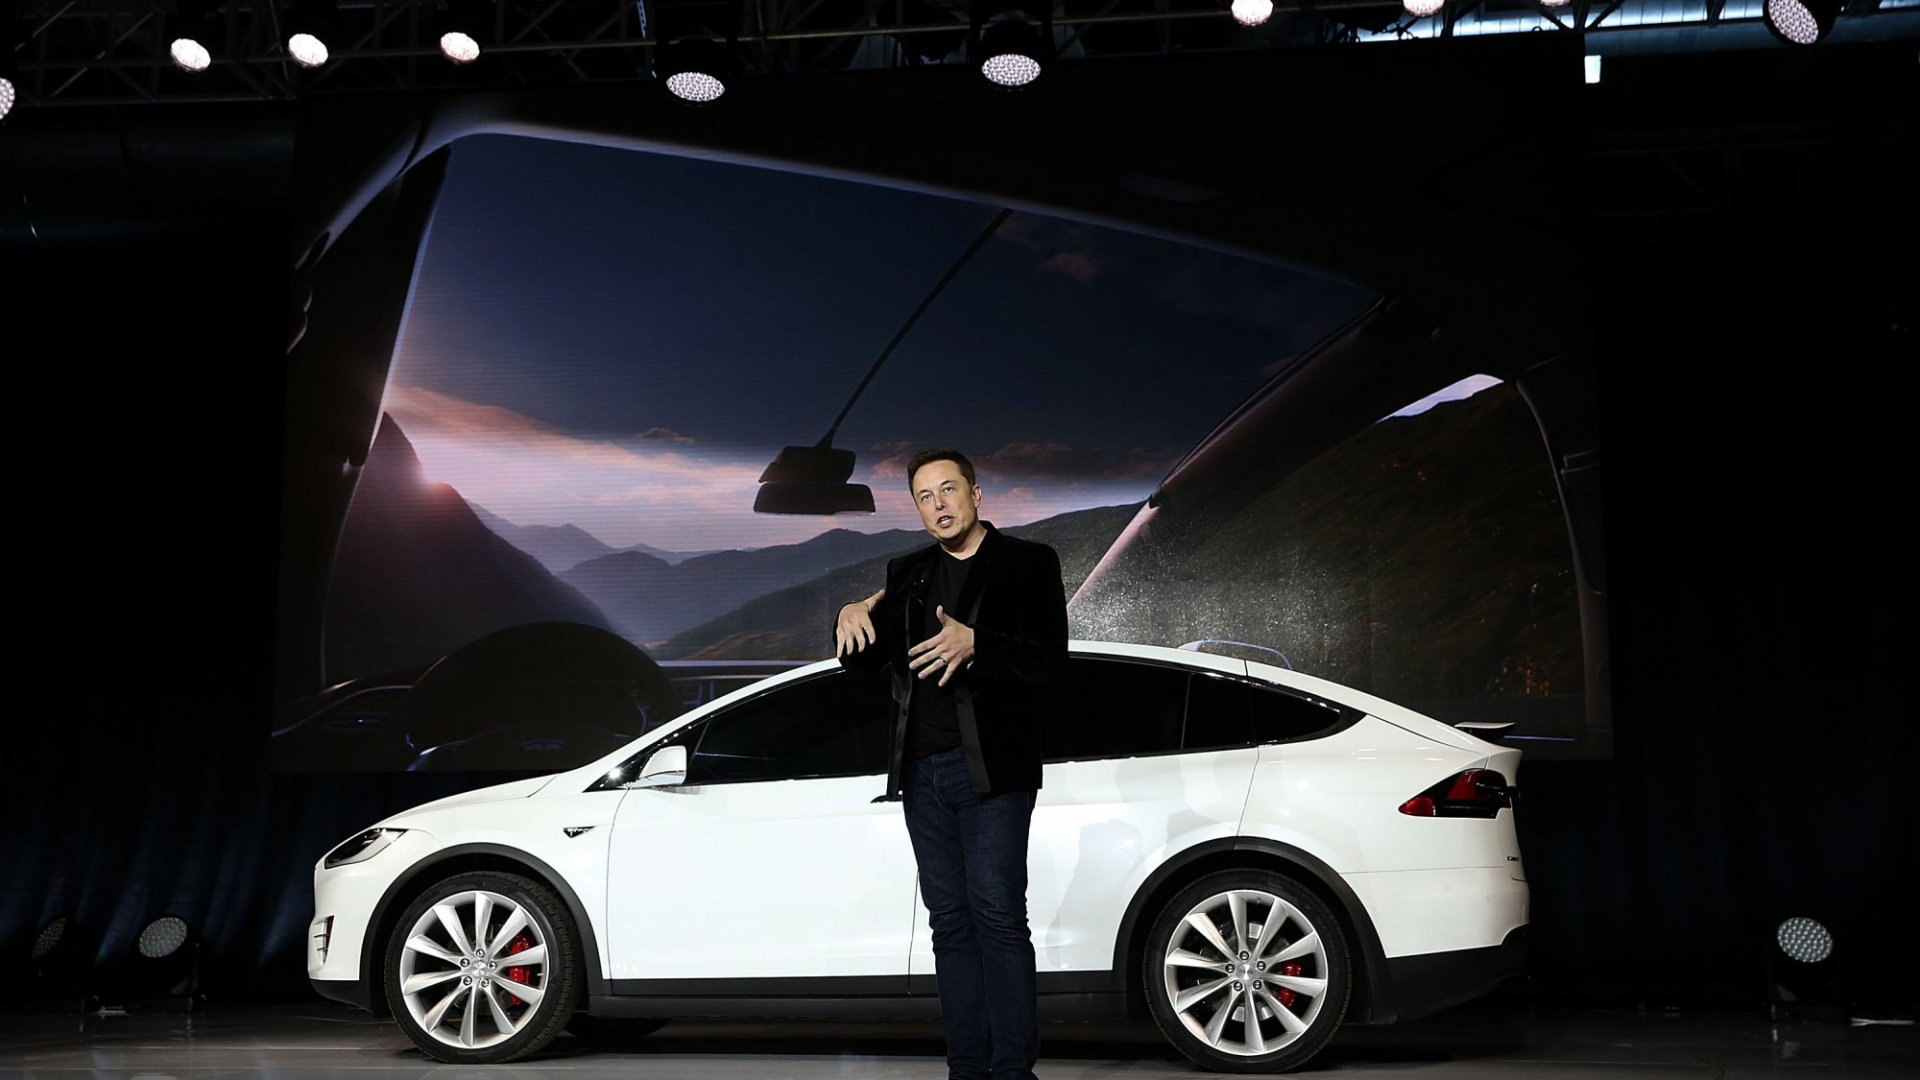 The Huge Challenge Elon Musk Is Facing Right Now